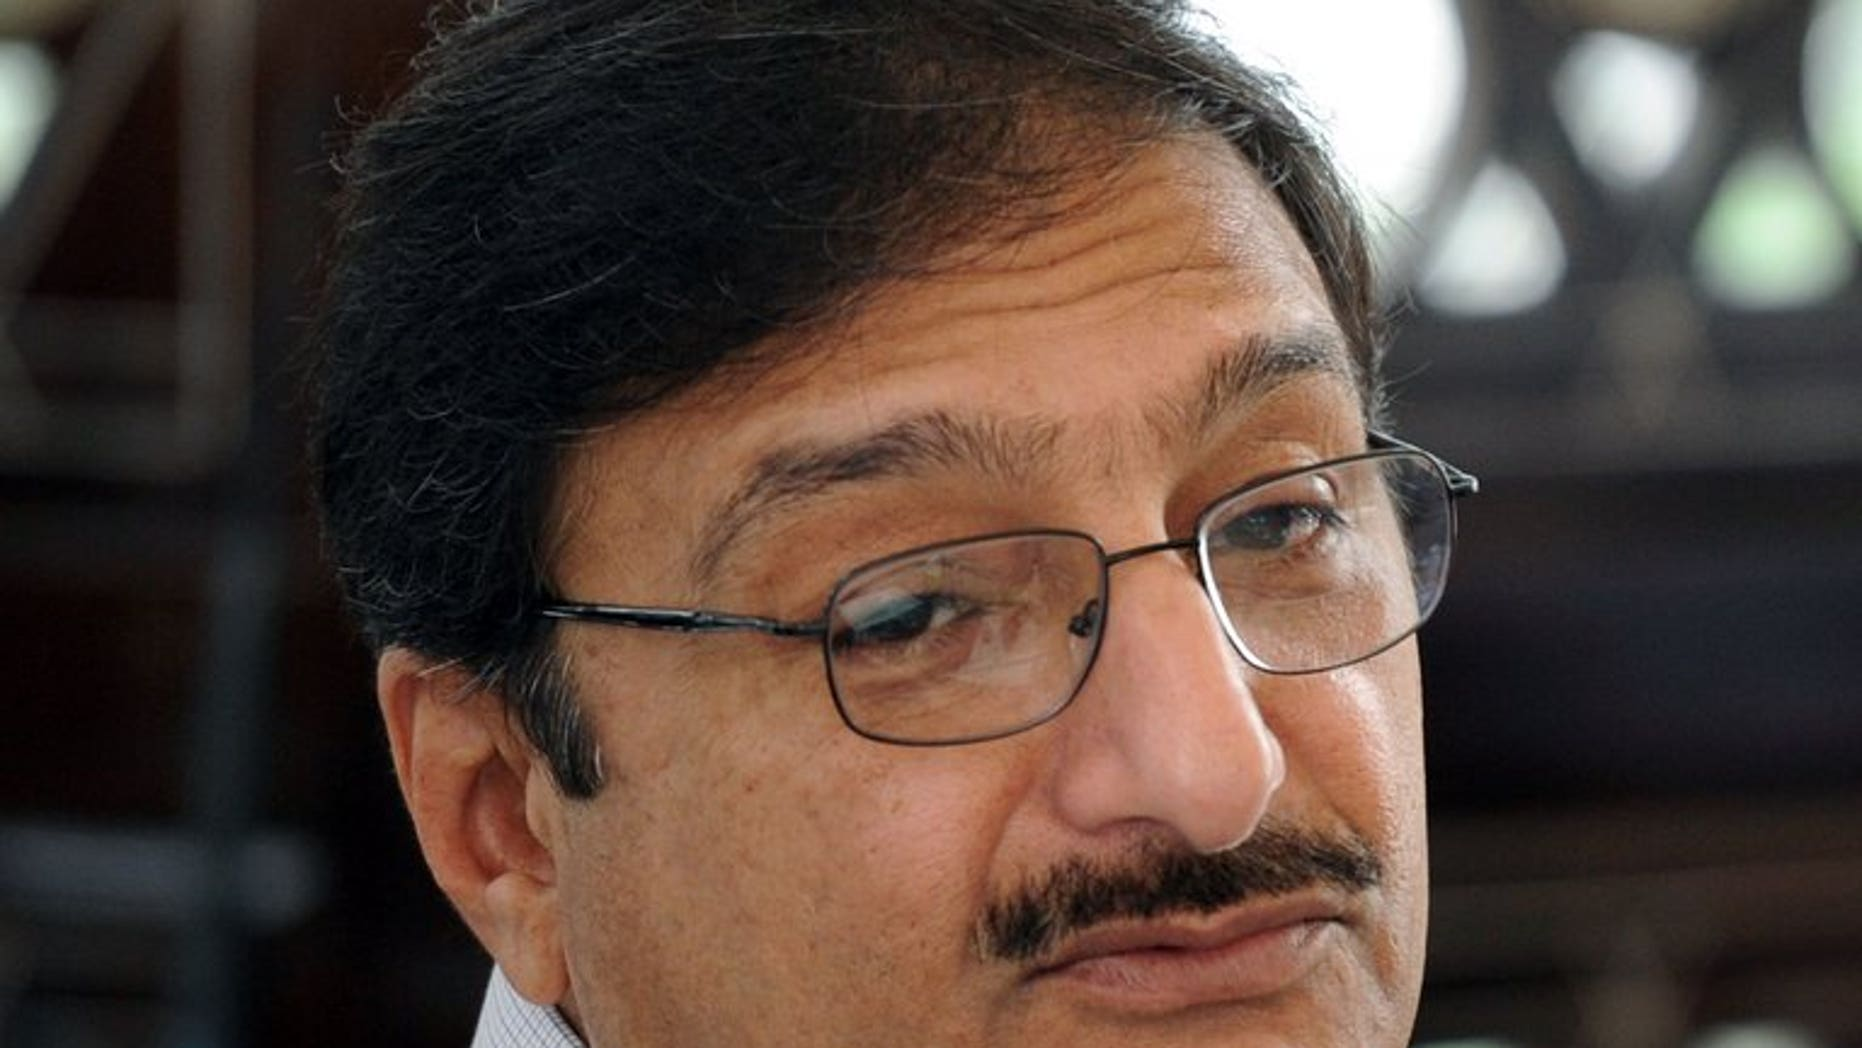 Former chairman of Pakistan Cricket Board (PCB) Zaka Ashraf speaks during a press conference in Dubai on September 10, 2012. A court in Pakistan ordered the country's cricket board to re-elect a chairman within 90 days after Ashraf was suspended over concerns about a dubious ballot.